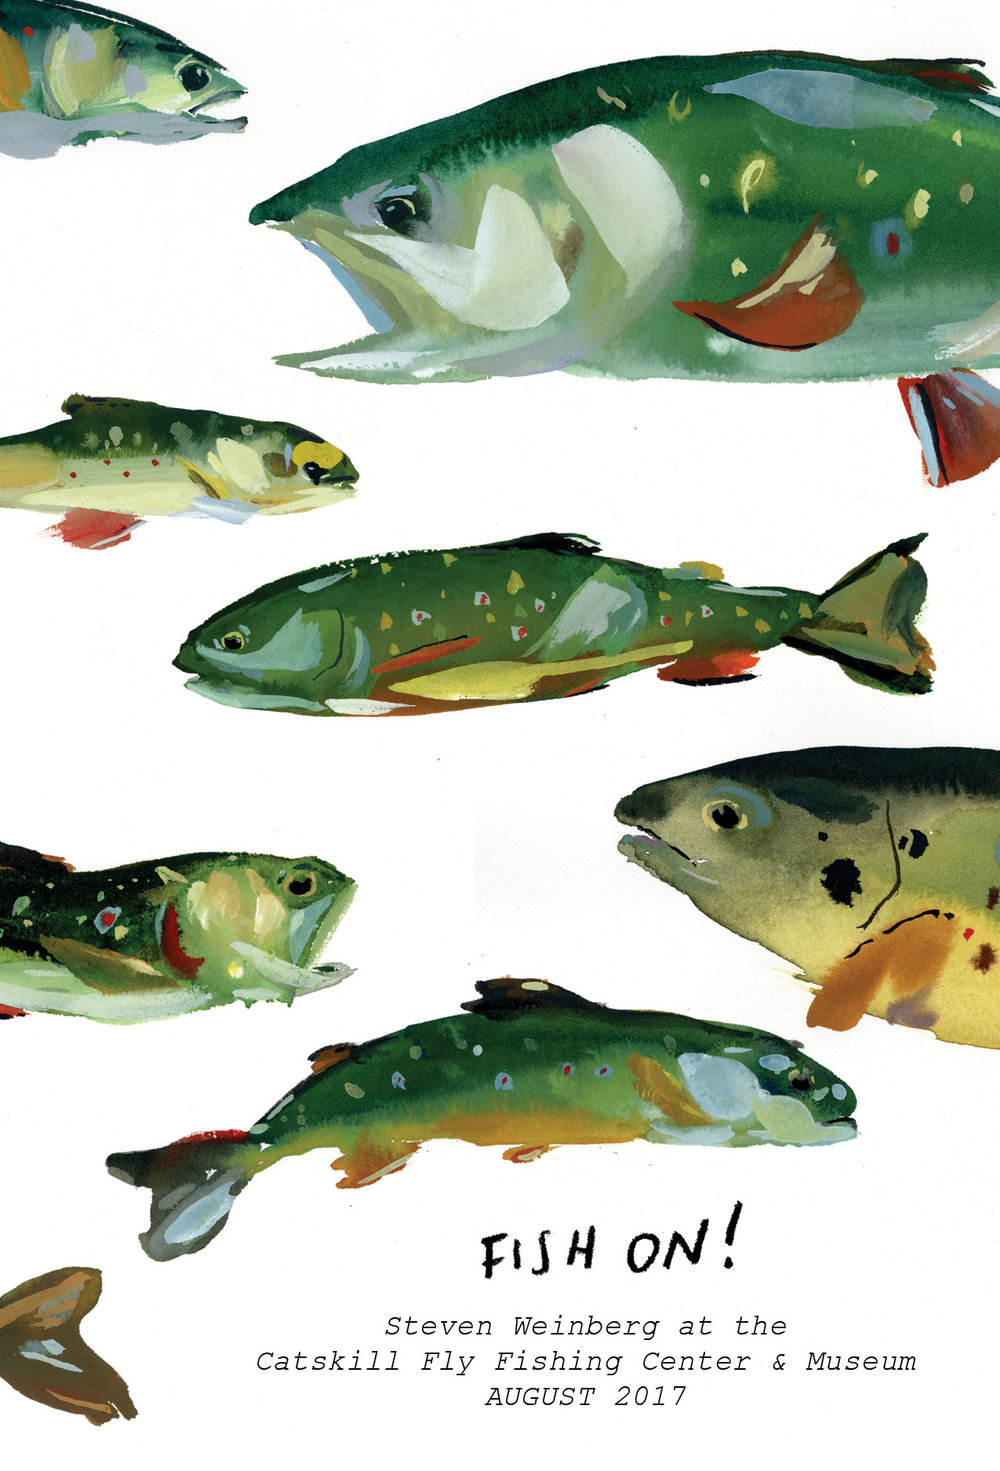 ccfm-postcard-fish-on.jpg